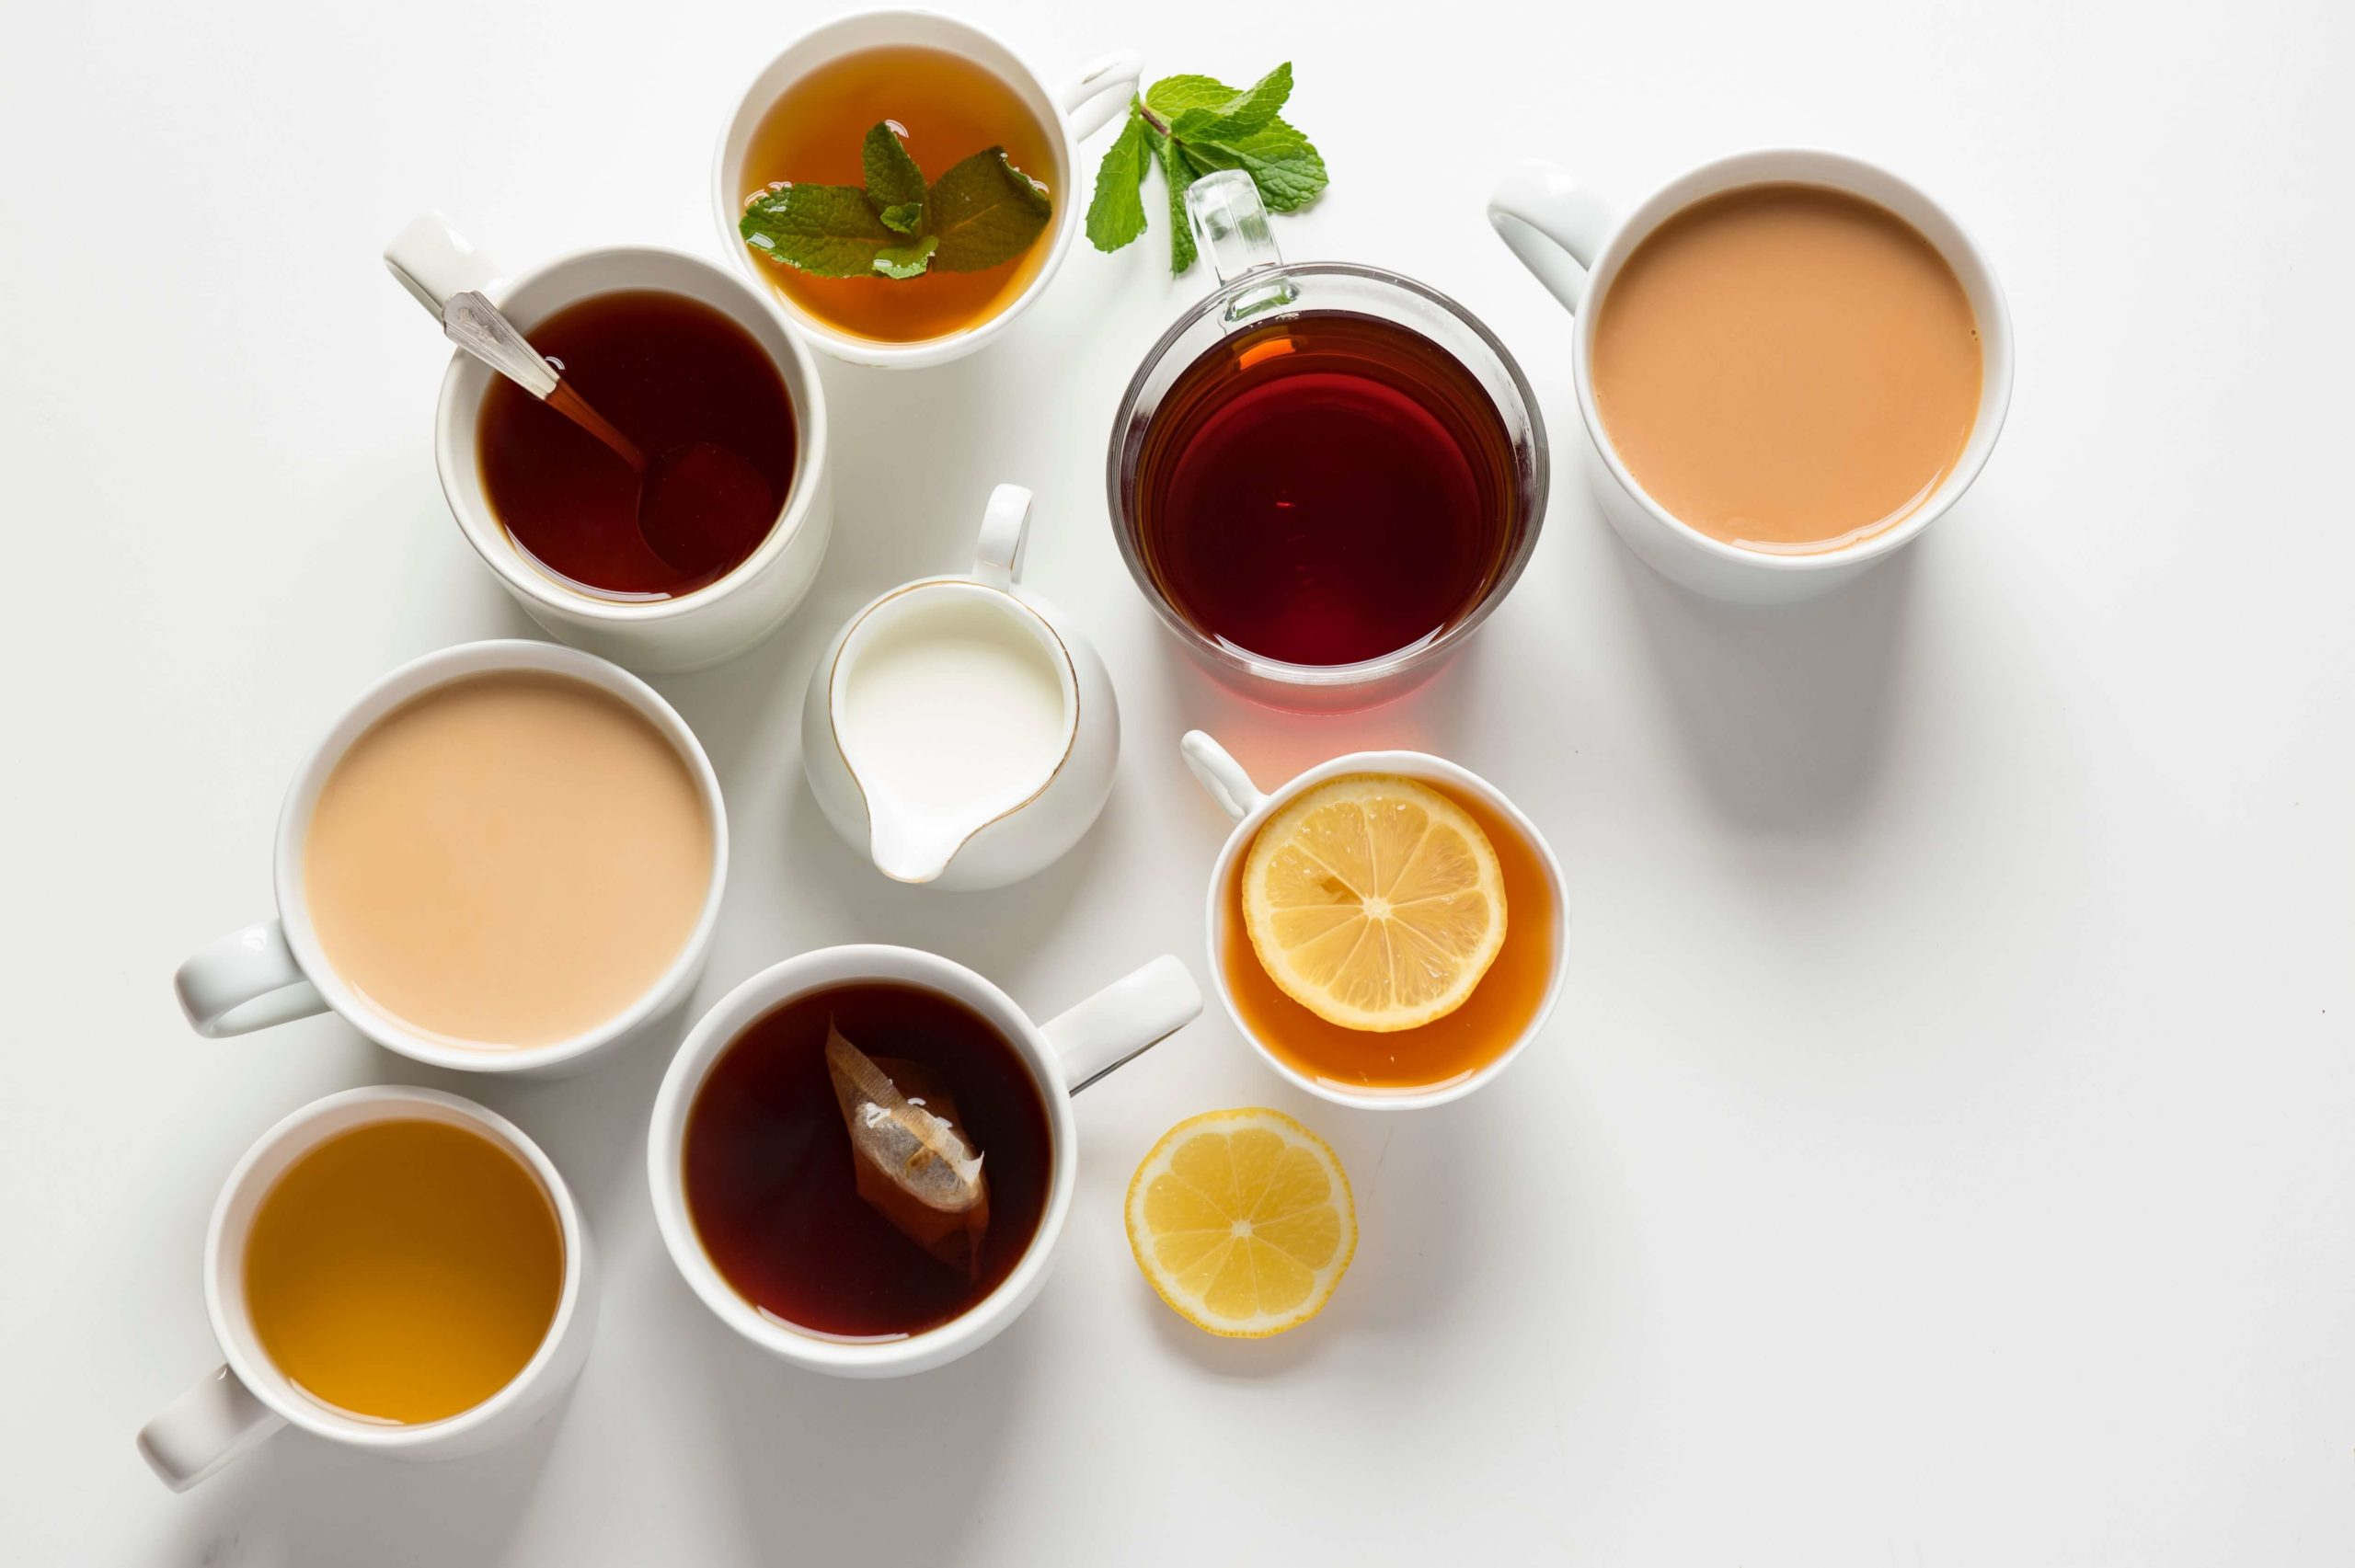 Flaylay of different teas and coffees